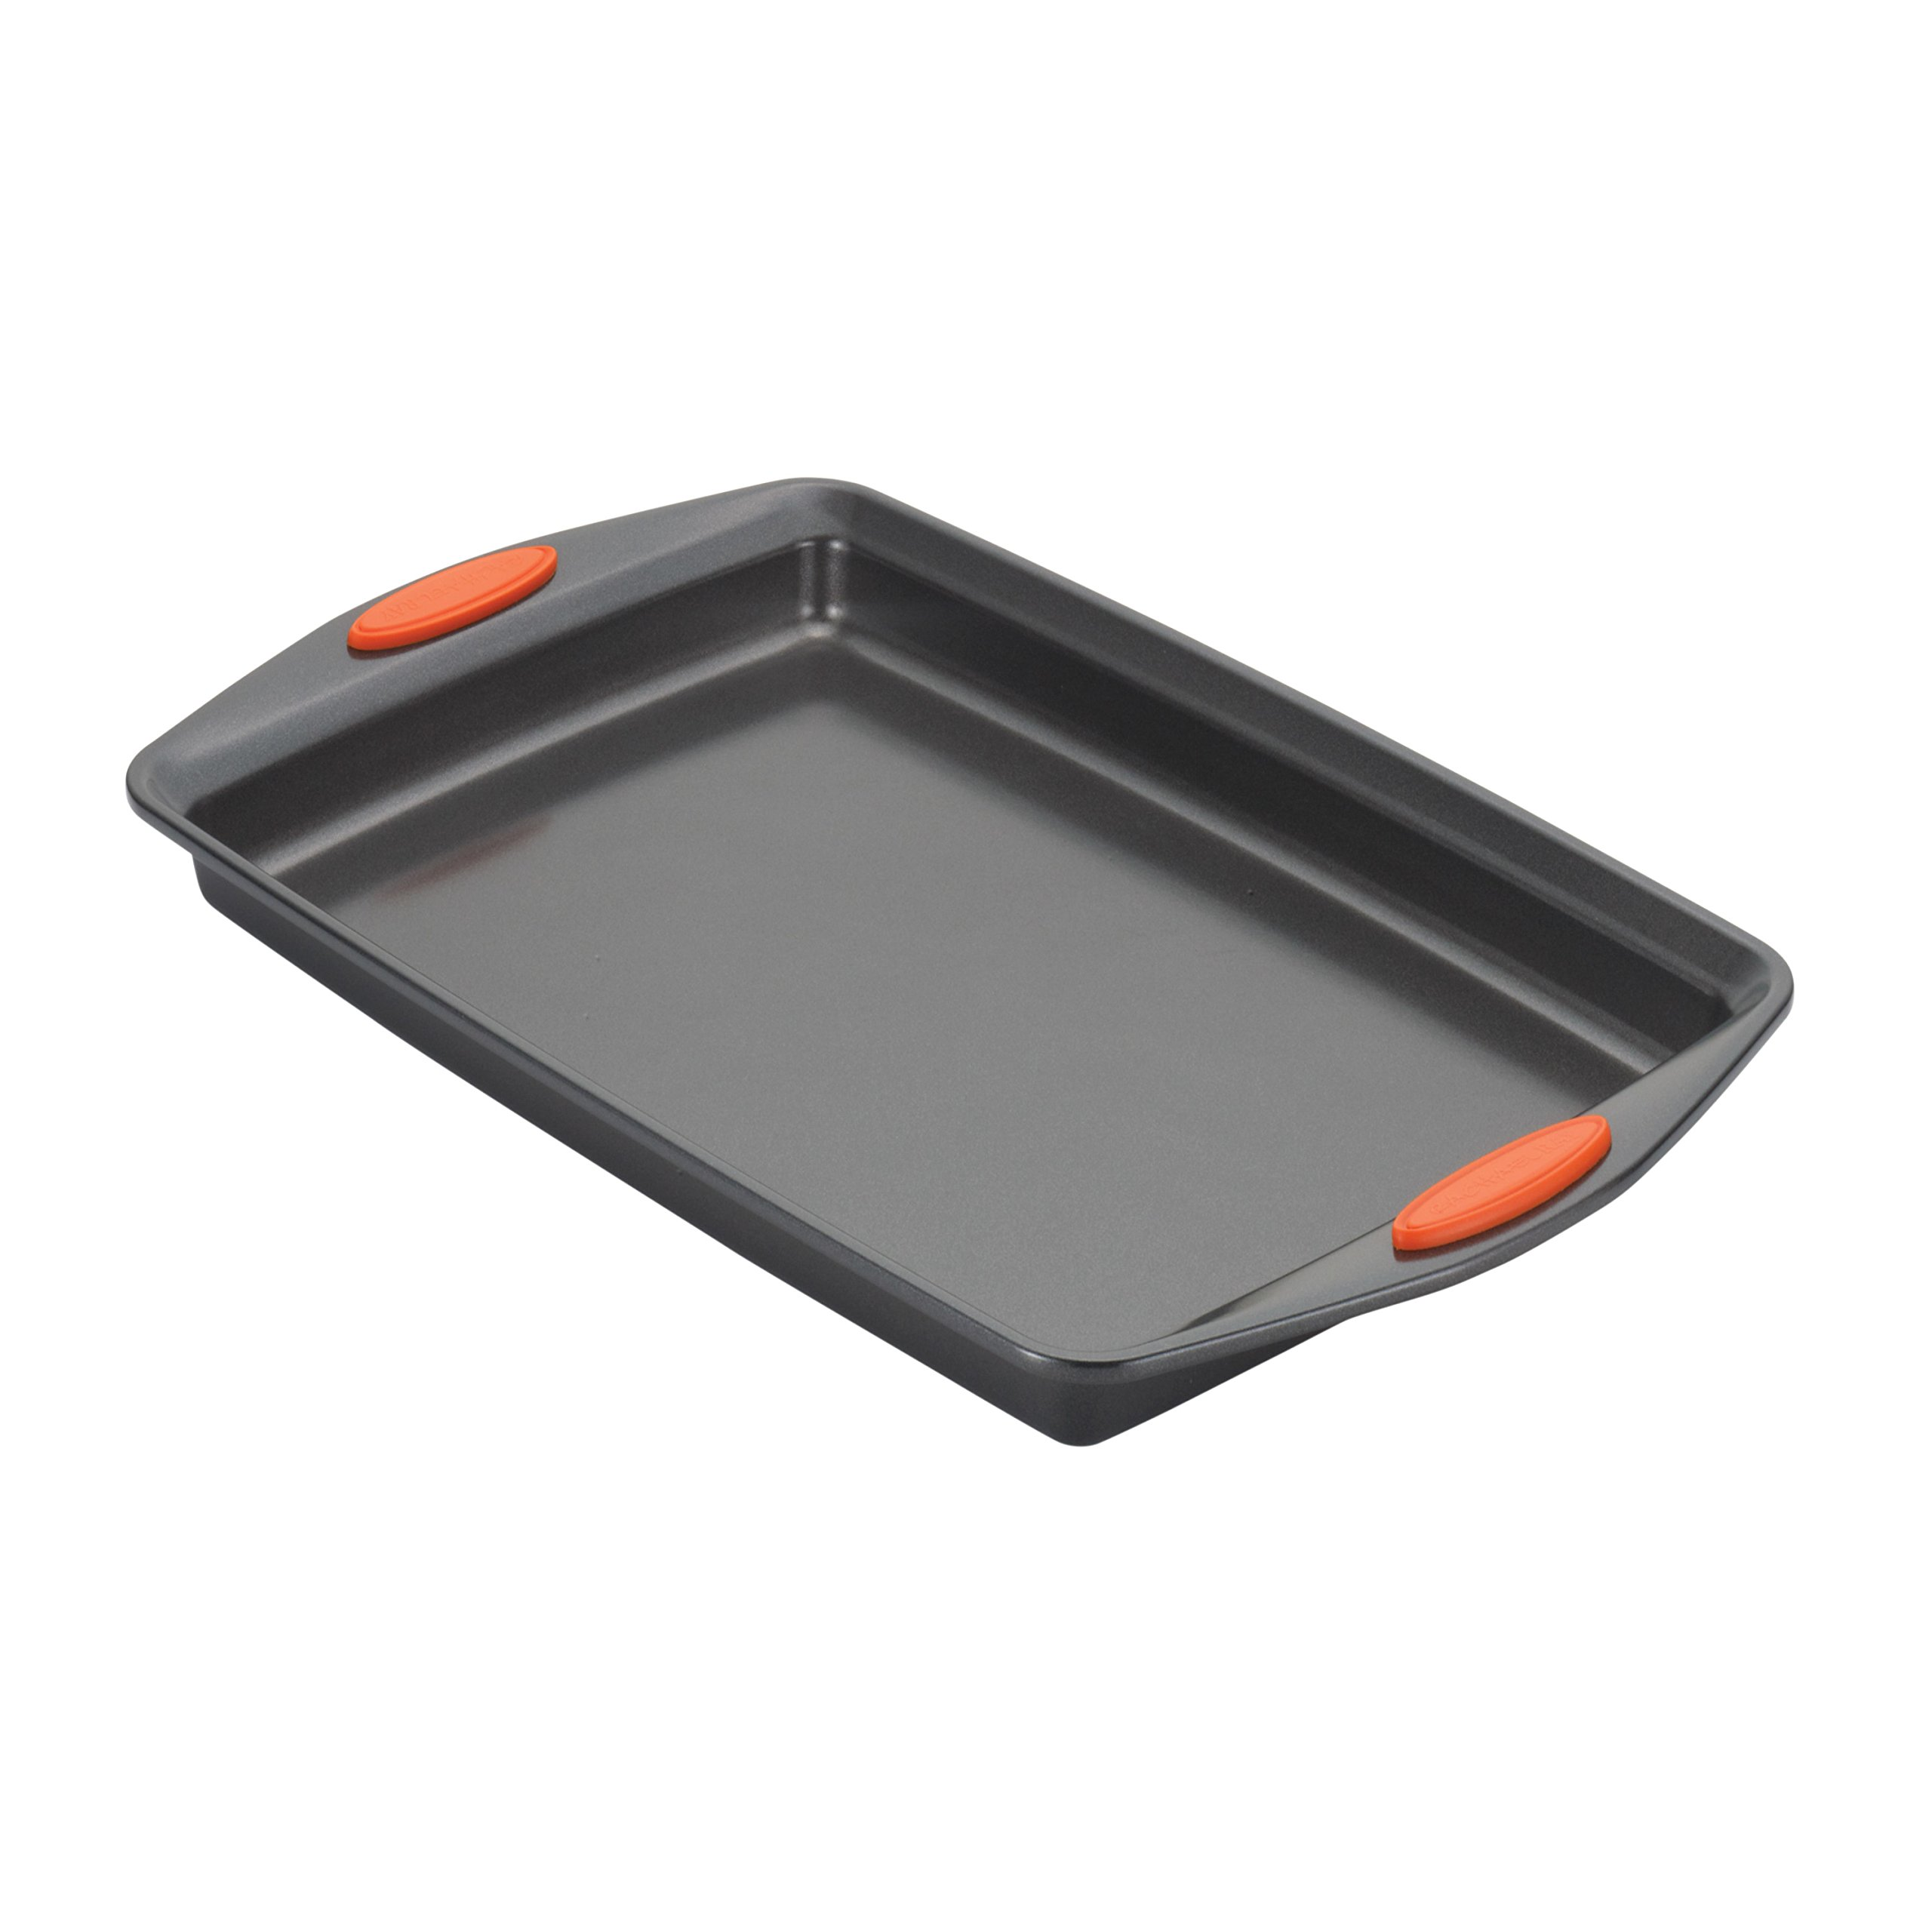 Rachael Ray Yum-o! Nonstick Bakeware 3-Piece Oven Lovin' Cookie Pan Set, Gray with Orange Silicone Grips by Rachael Ray (Image #3)